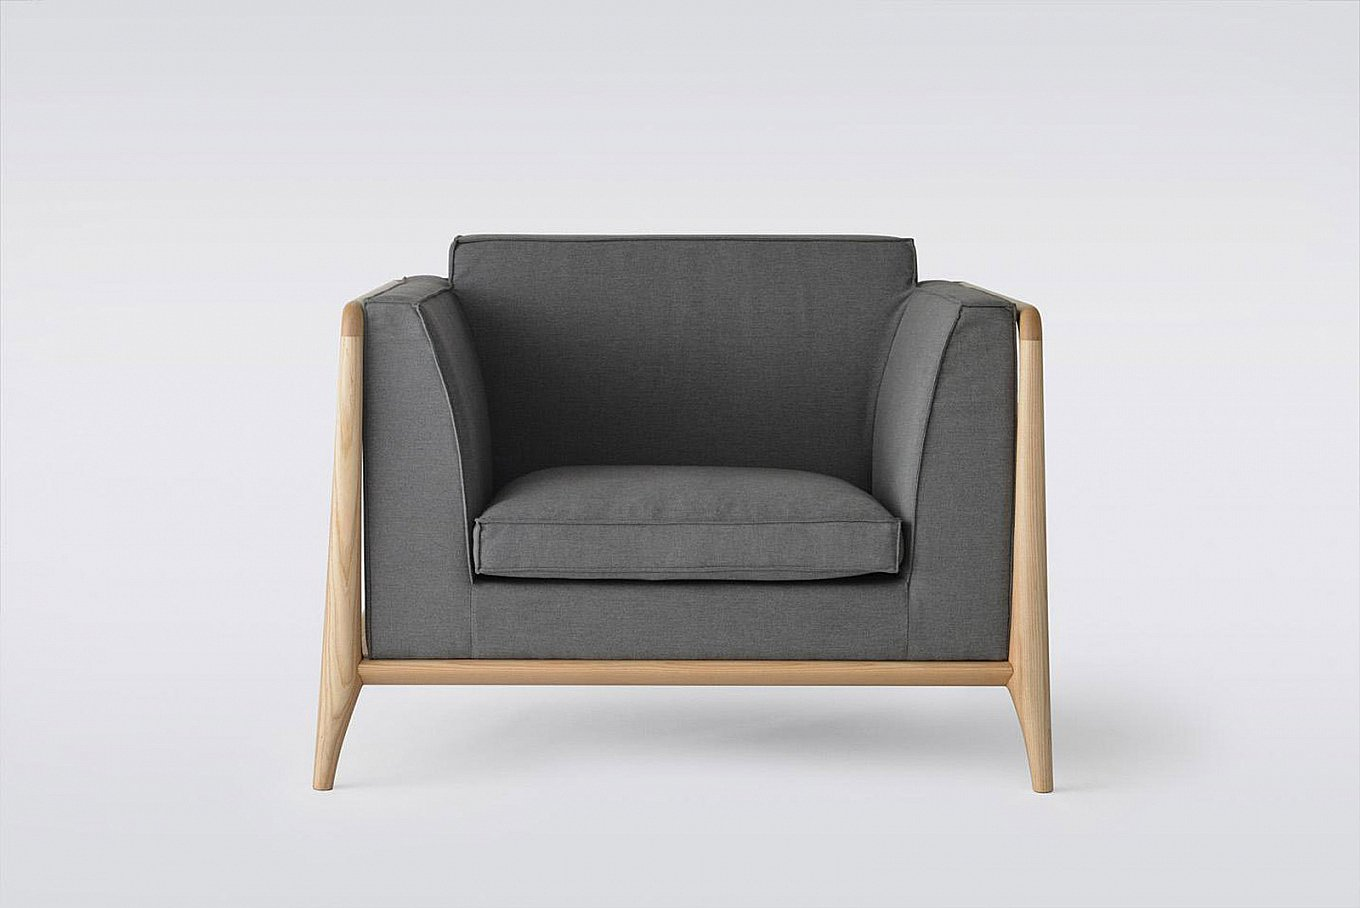 Fnji Furniture Gessato